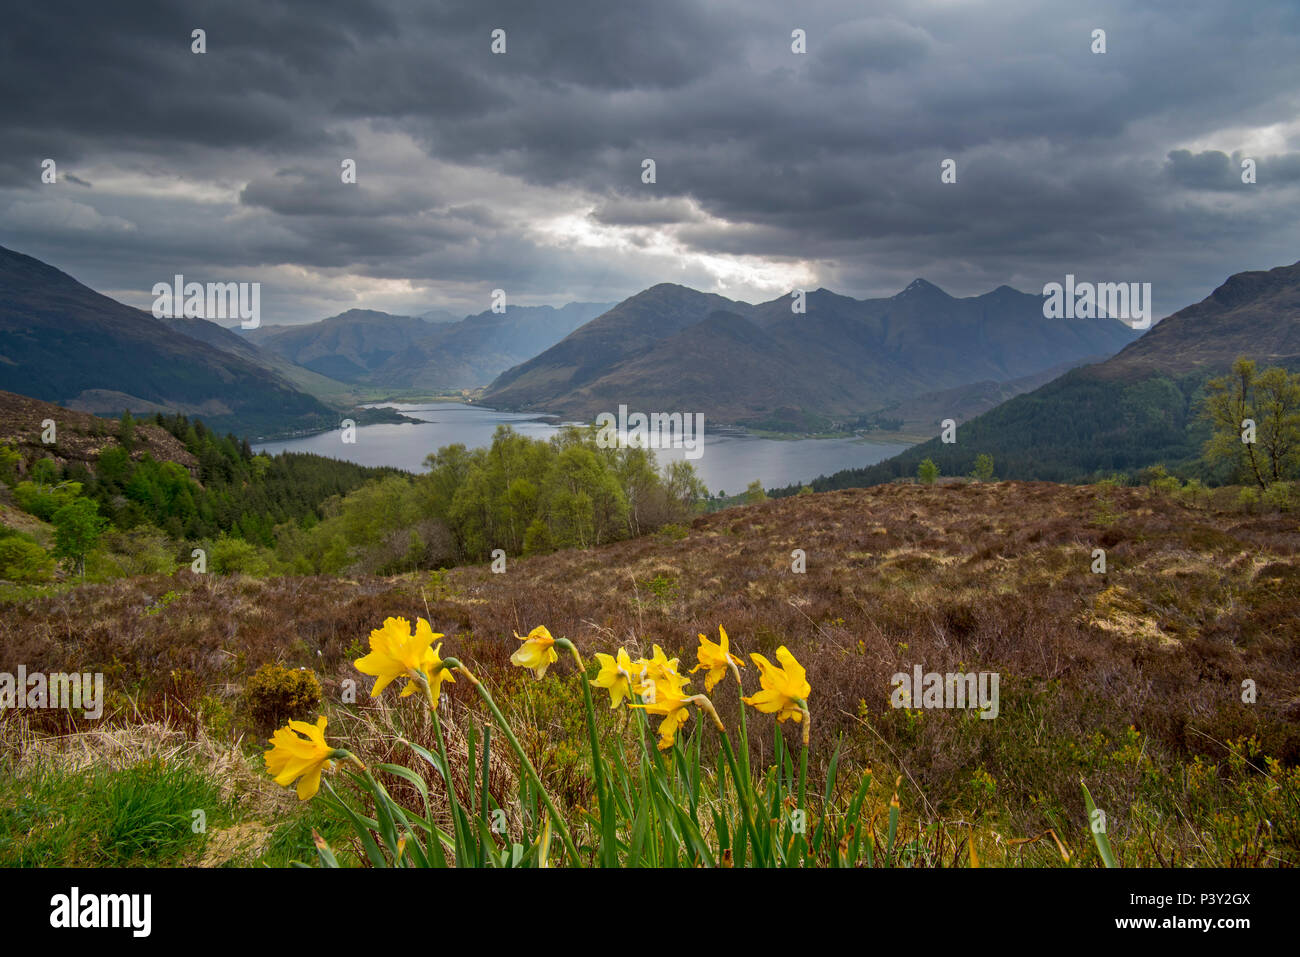 View over Loch Duich and the mountain summits of the Five Sisters of Kintail from Bealach Ratagain / Ratagan viewpoint, Highland, Scotland, UK Stock Photo